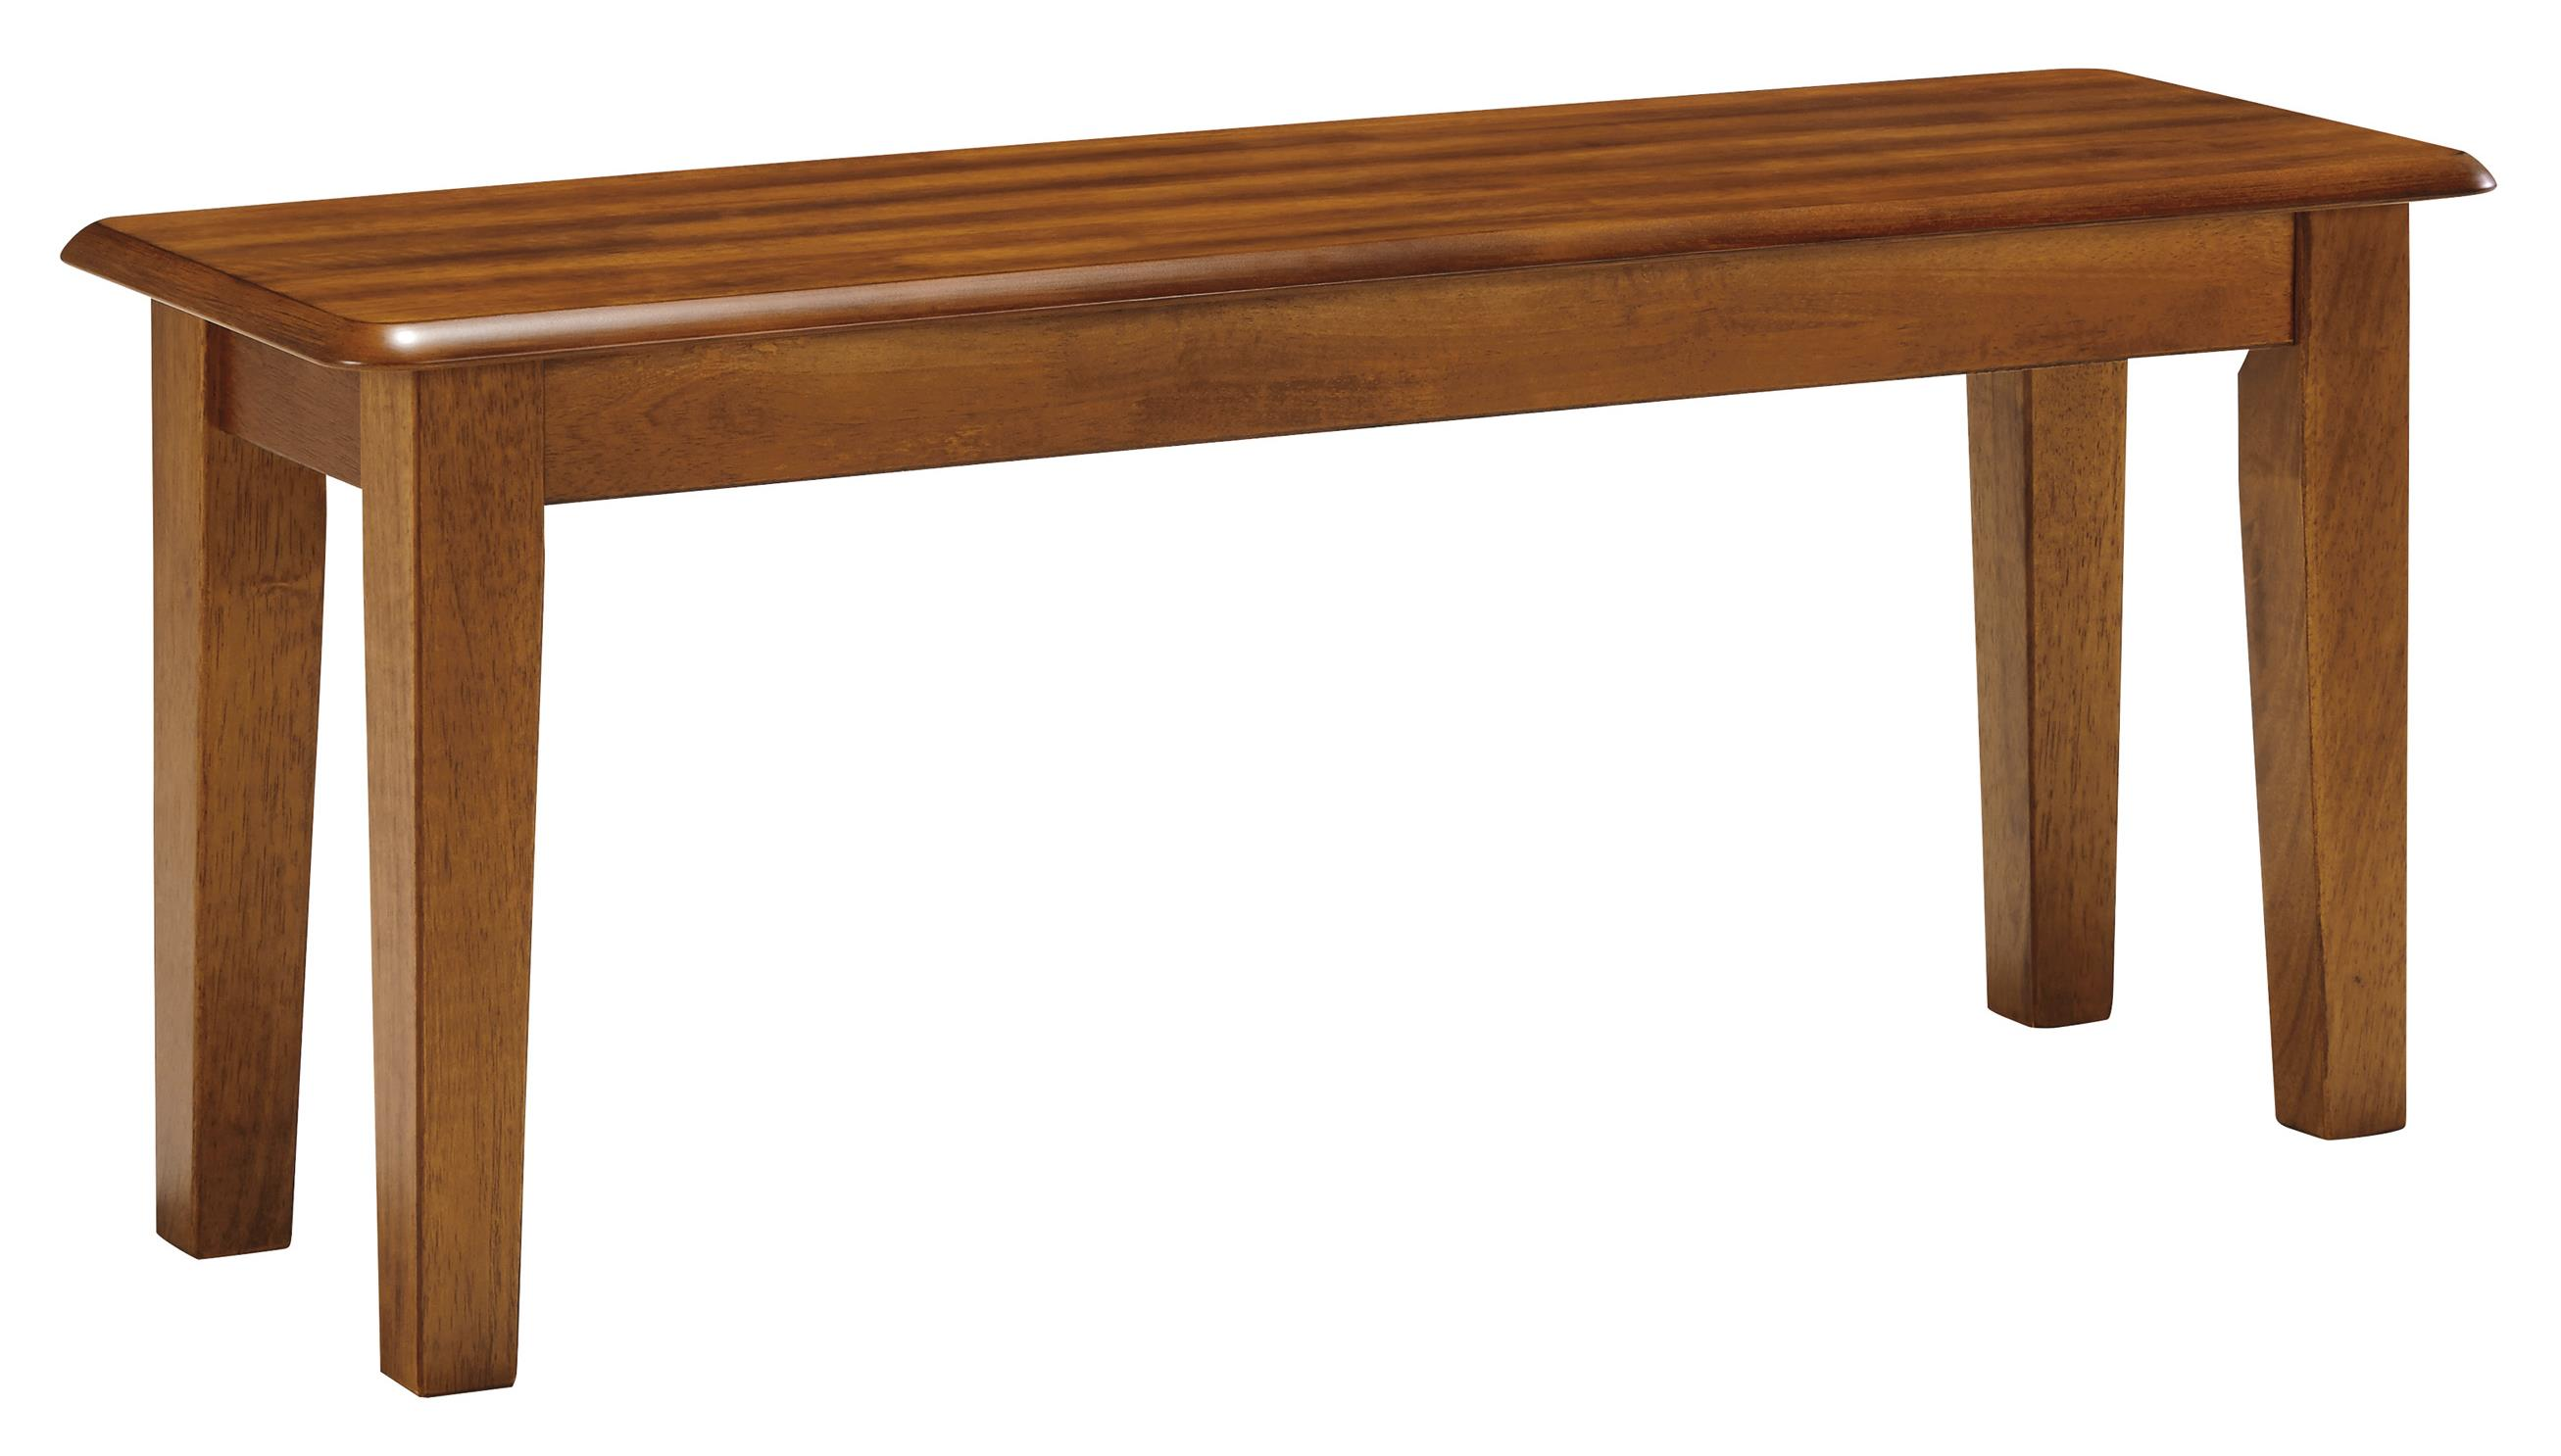 Berringer Bench by Ashley Furniture at Household Furniture